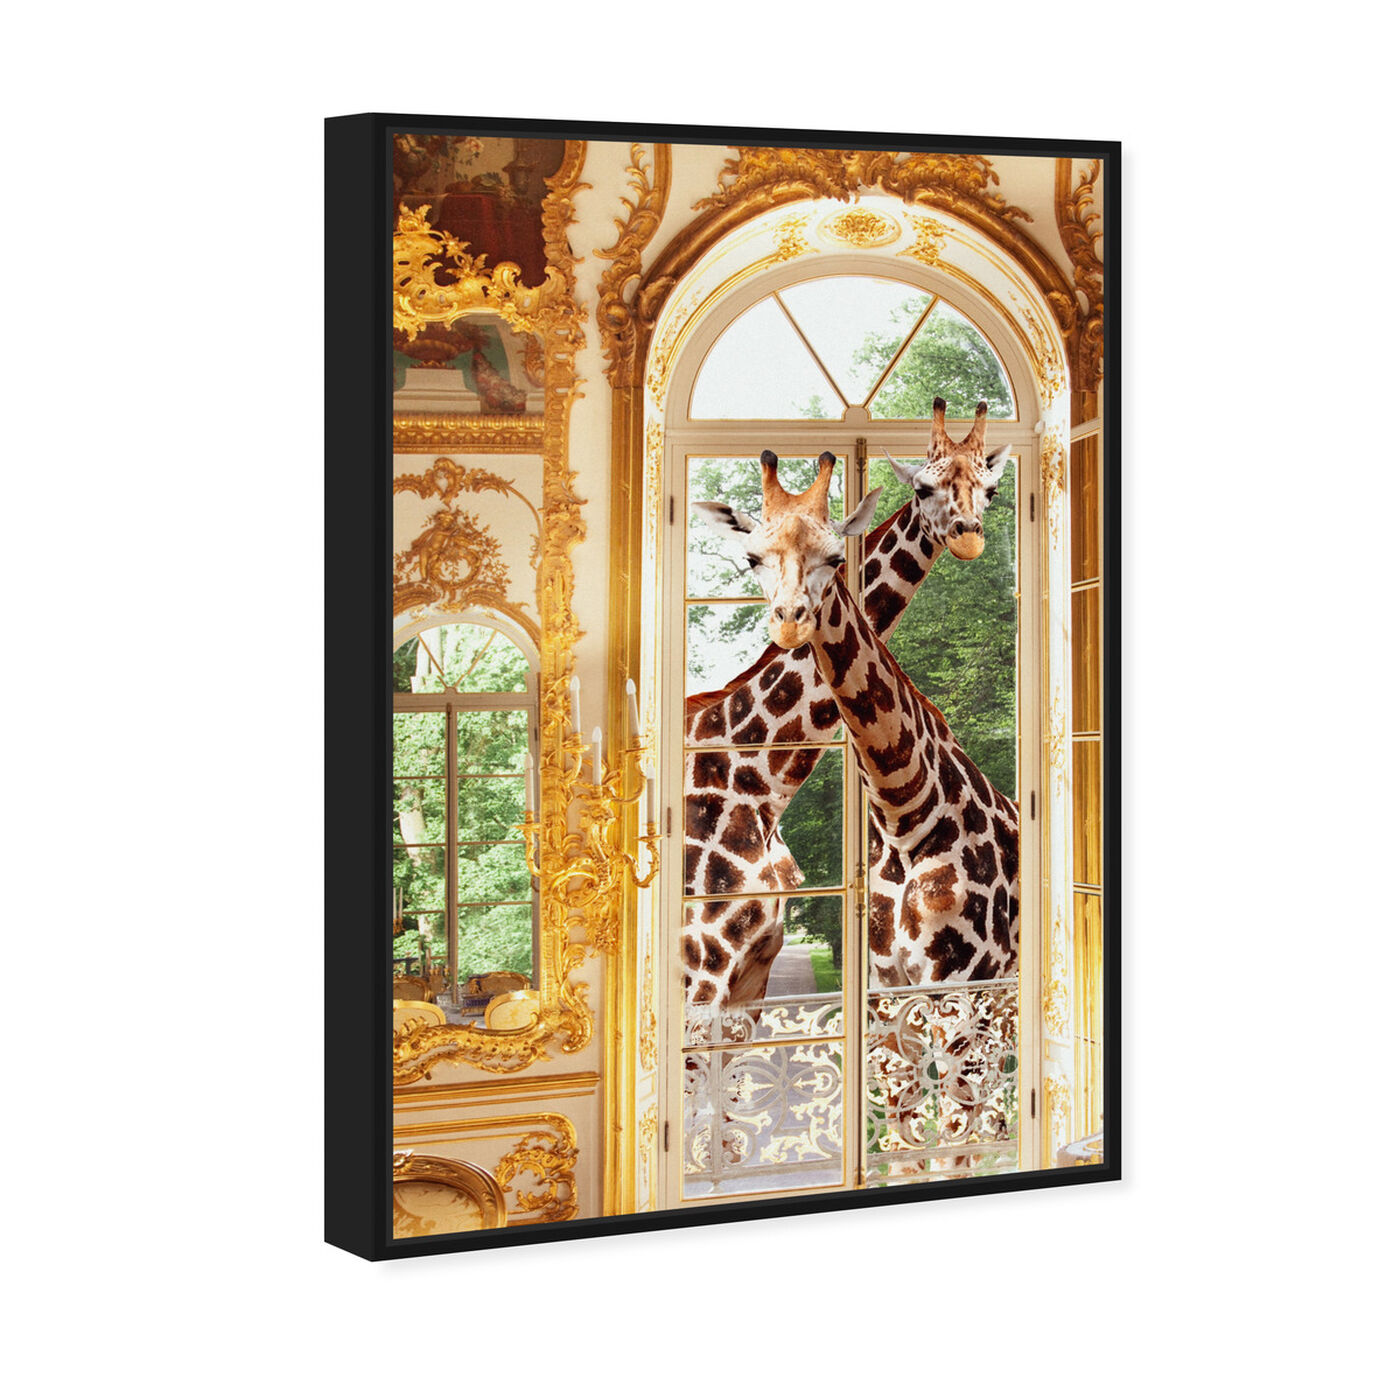 Angled view of Giraffes Joined For Breakfast featuring animals and zoo and wild animals art.